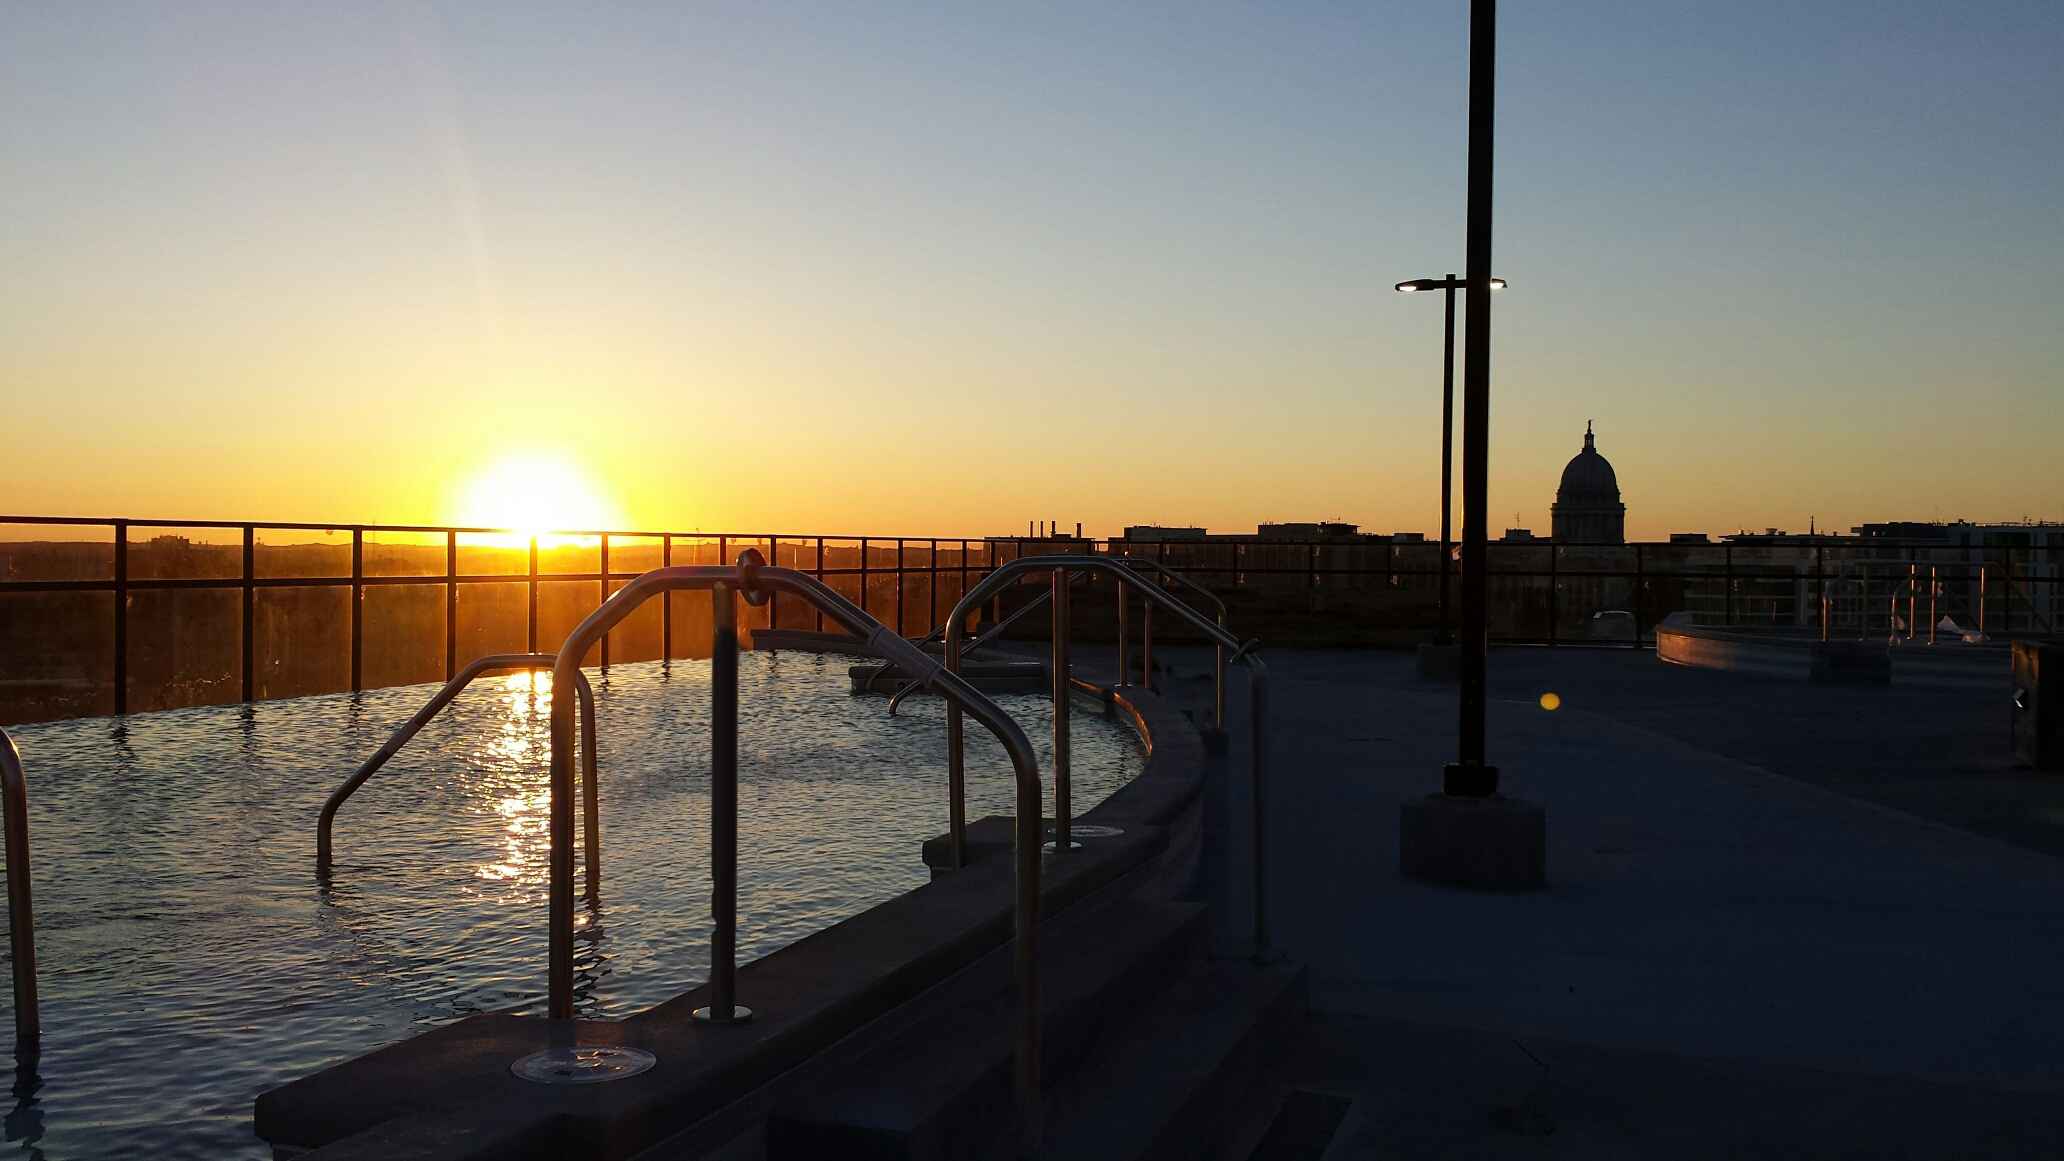 Sunset view of the outdoor rooftop pool at The HUB in Madison, WI